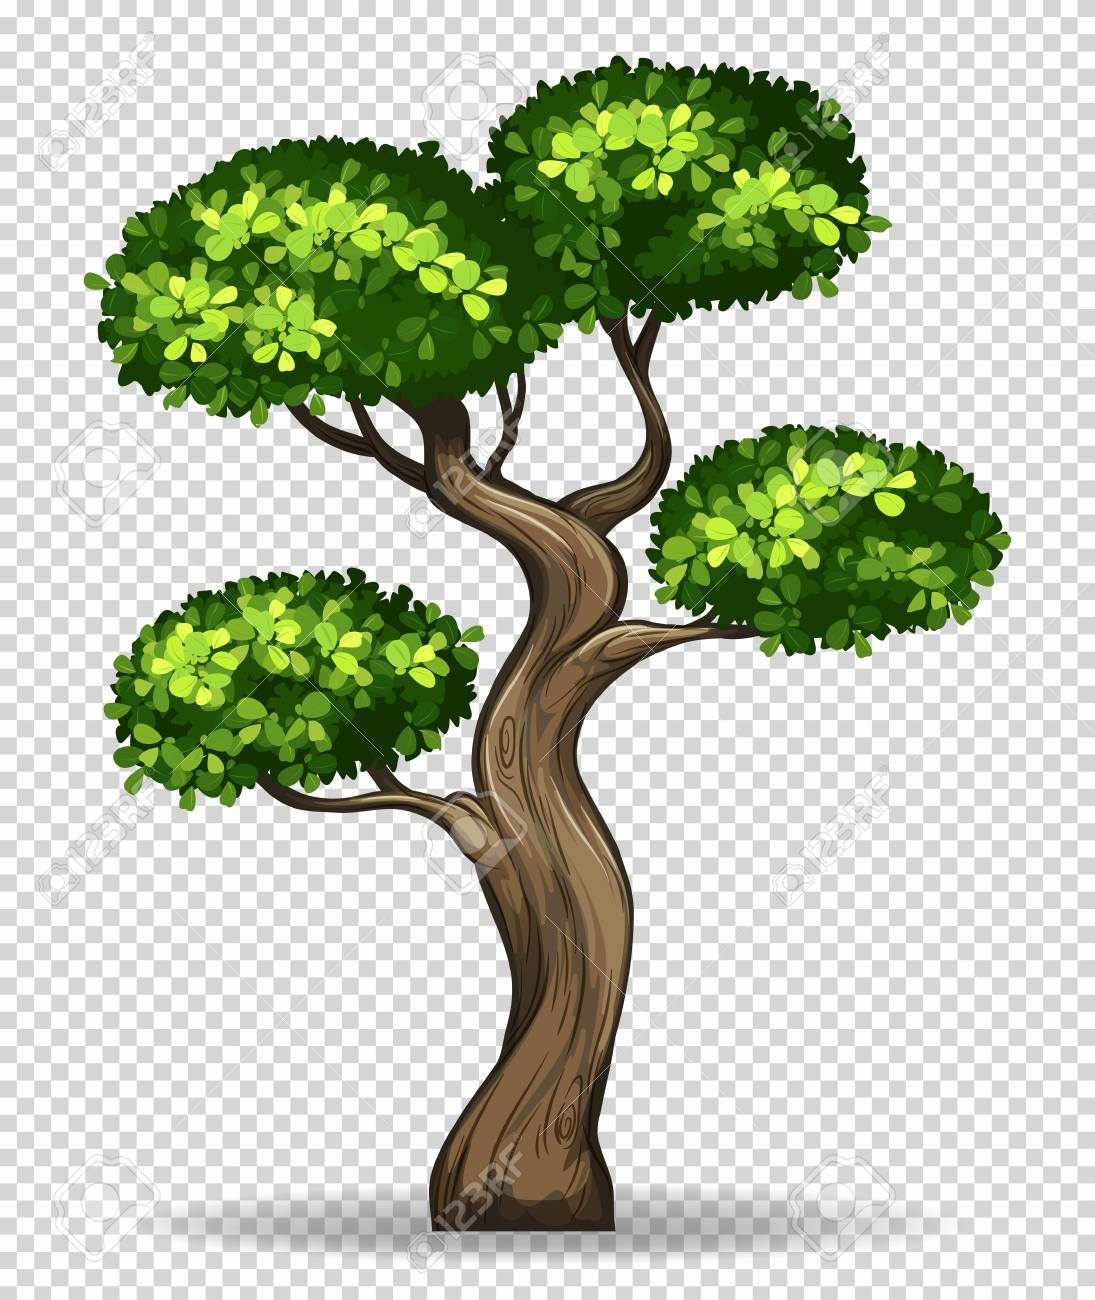 Bonsai tree on transparent background » Clipart Station.